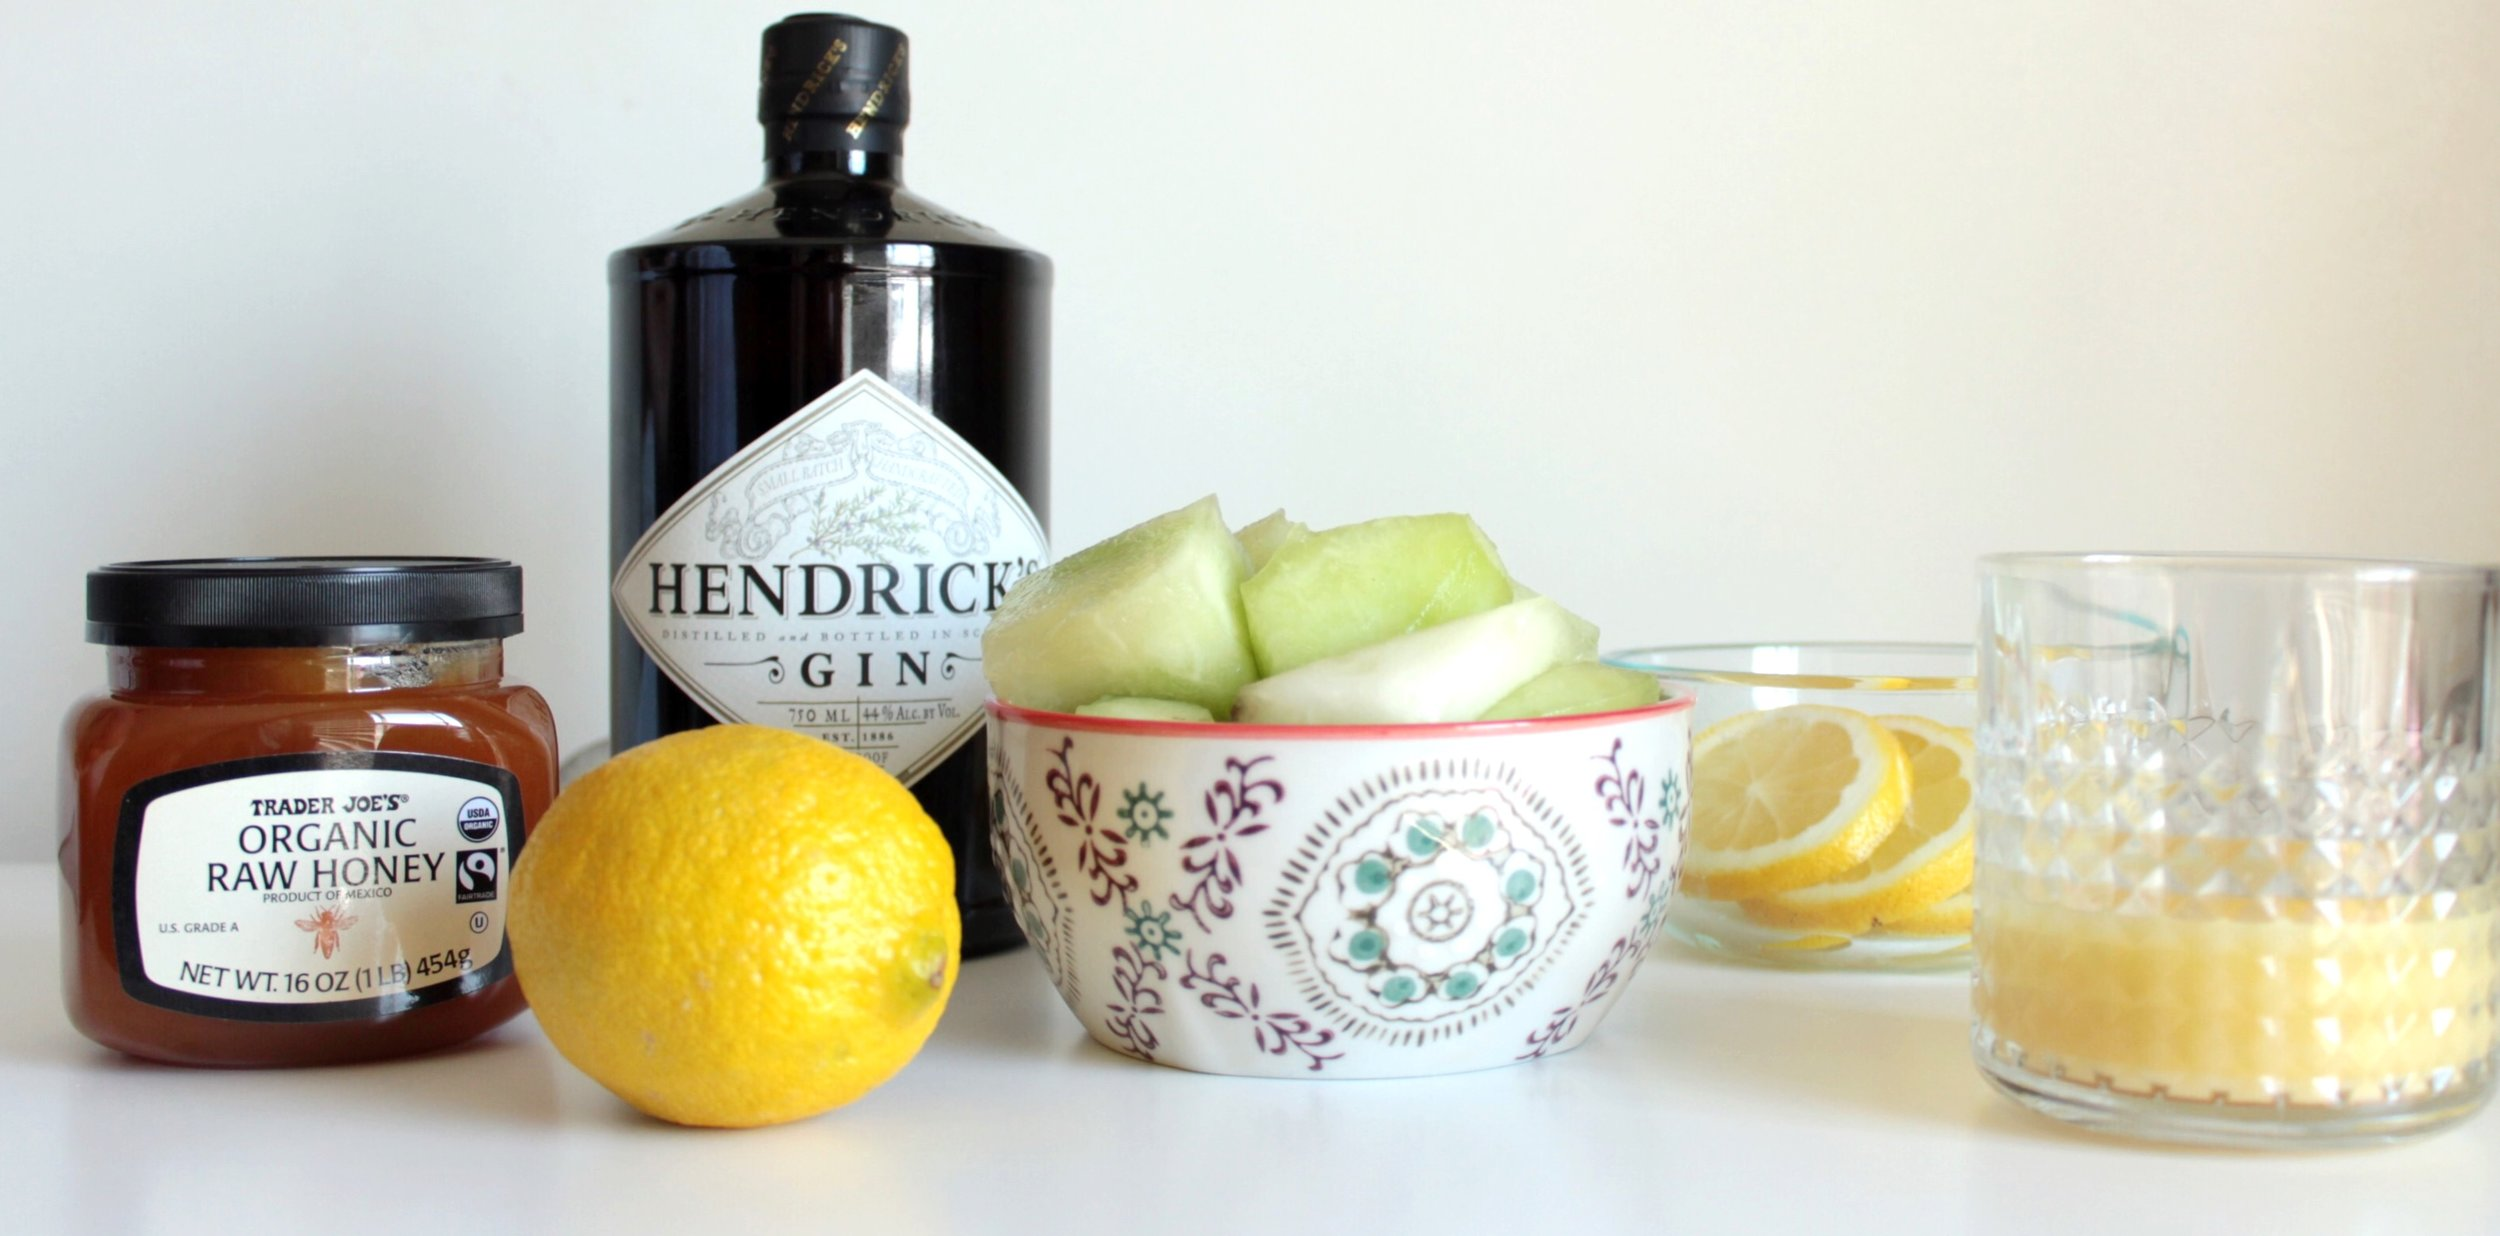 Cocktail Ingredients / Fresh Fruit / Organic Trader Joe's Honey / Hendricks Gin